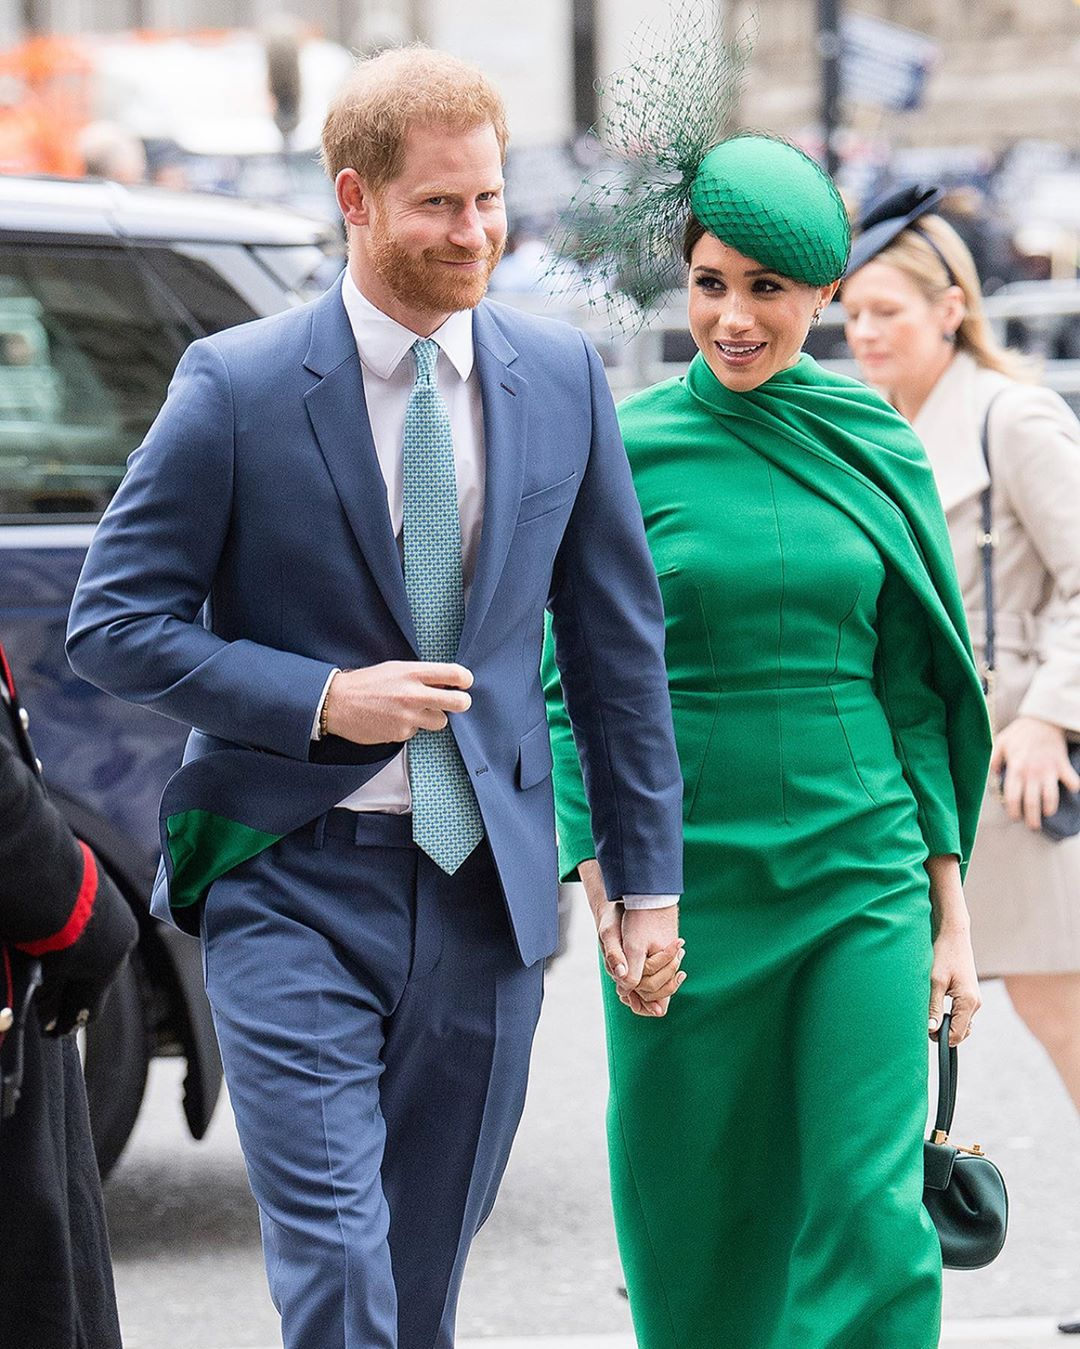 Harry and Meghan Donates funds from their royal wedding